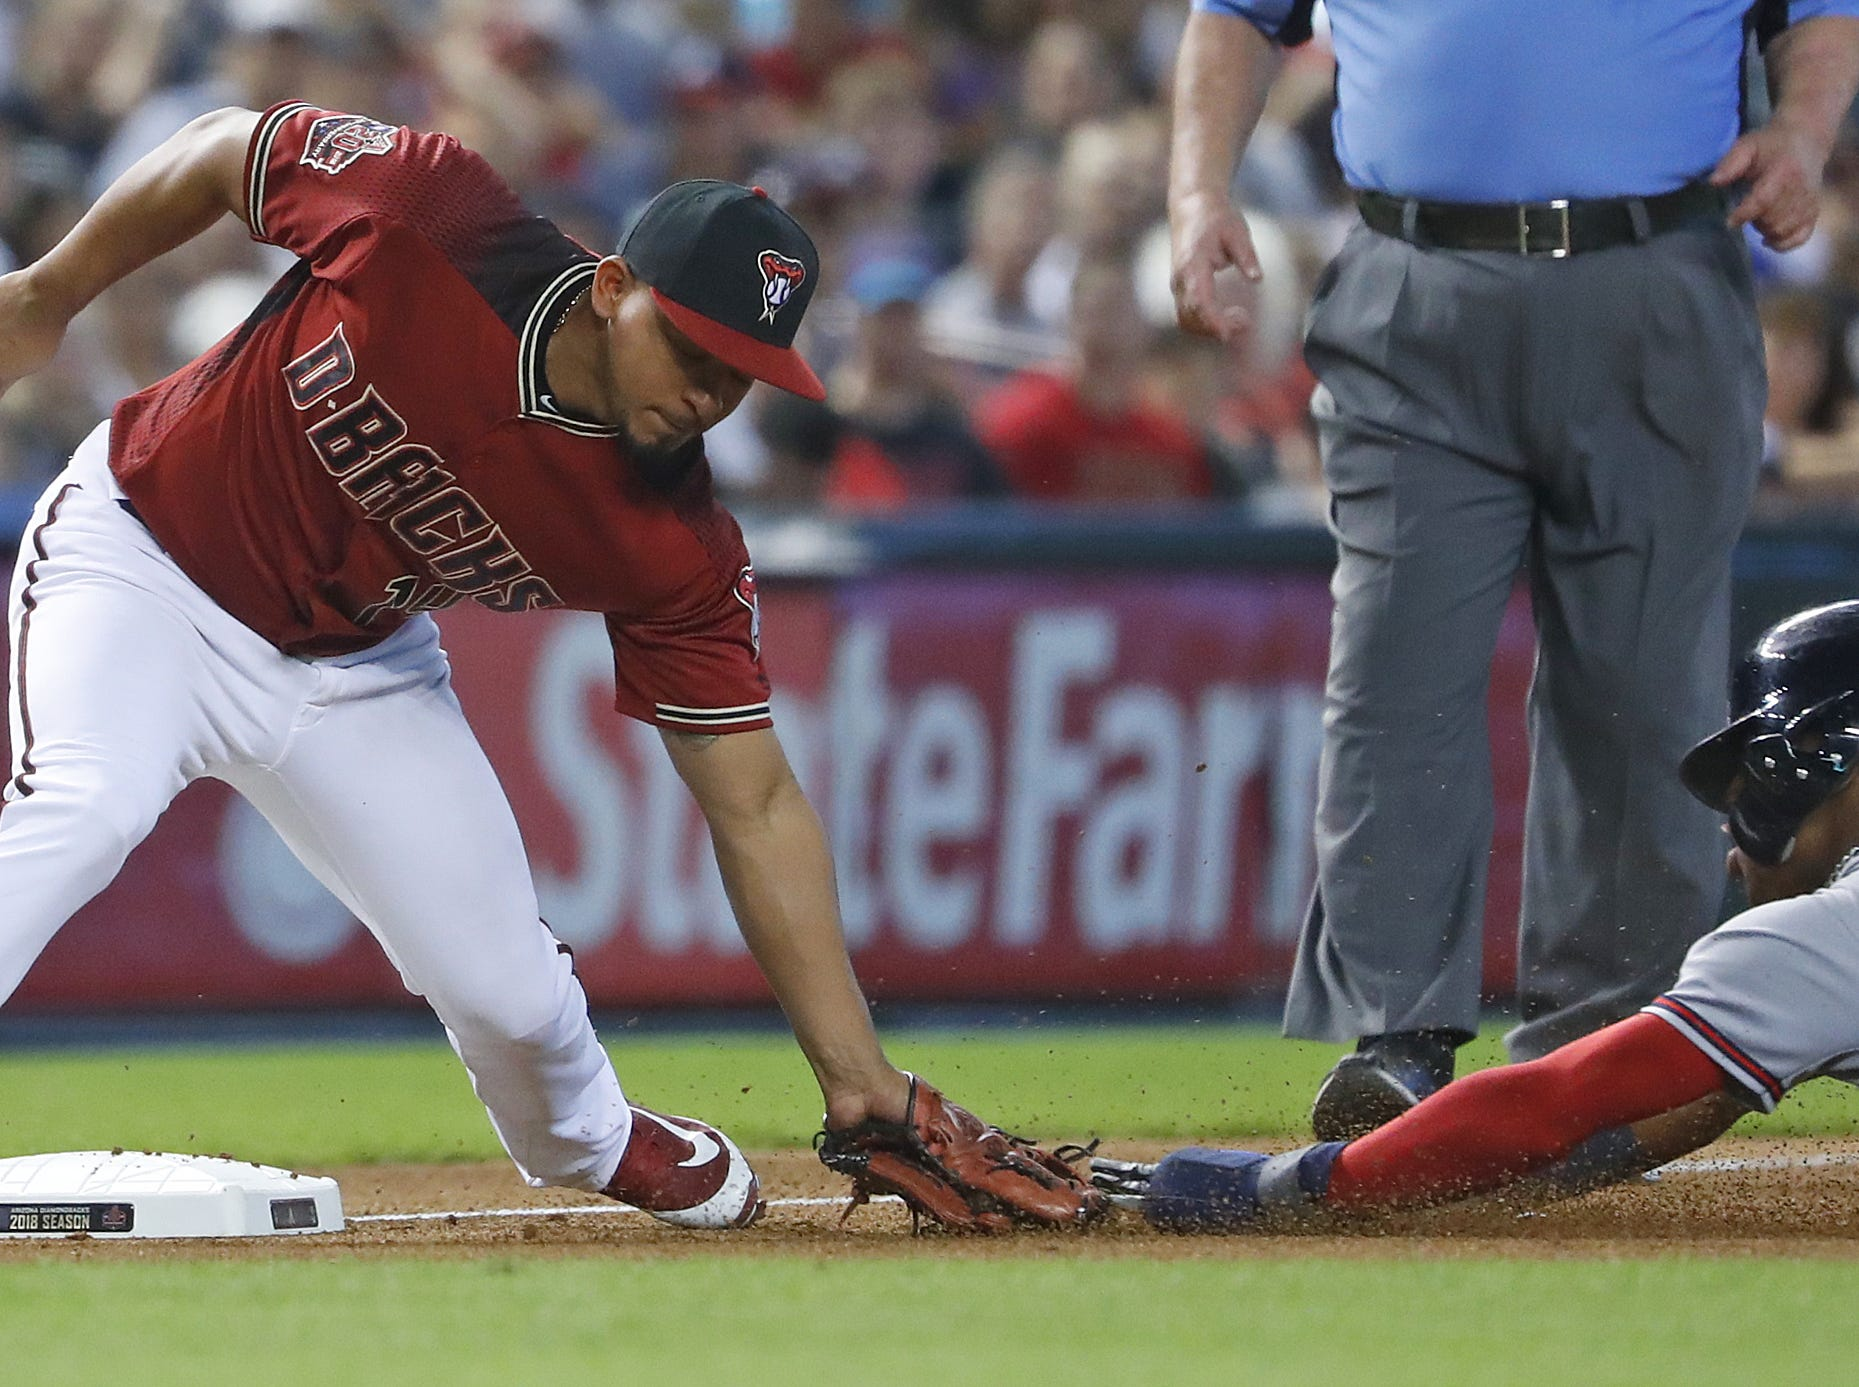 Diamondbacks Eduardo Escobar (14) tags out Braves Ronald Acuna (13) as he attempted to steal third base during the fourth inning at Chase Field in Phoenix, Ariz. on Sept. 9, 2018.